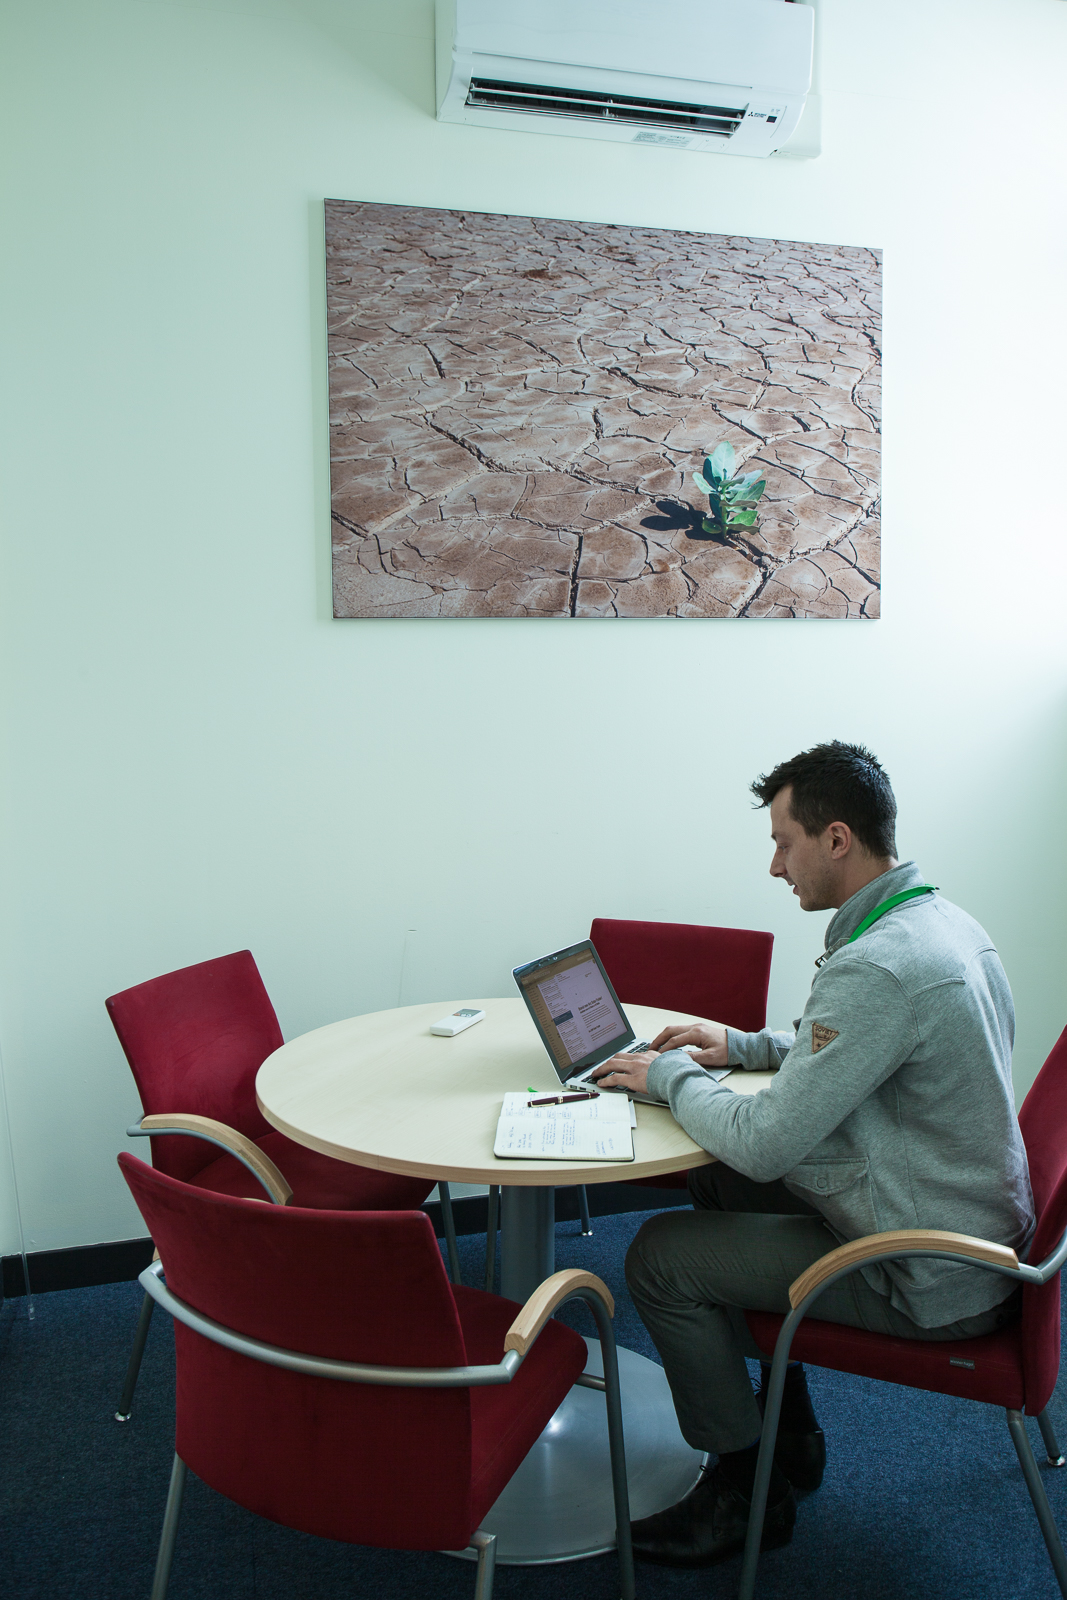 Meeting rooms can be clinical places often decorated as an afterthought, if at all. Add a feature image (and maybe a potted plant or two) and even small rooms can feel more welcoming. [Click to enlarge]